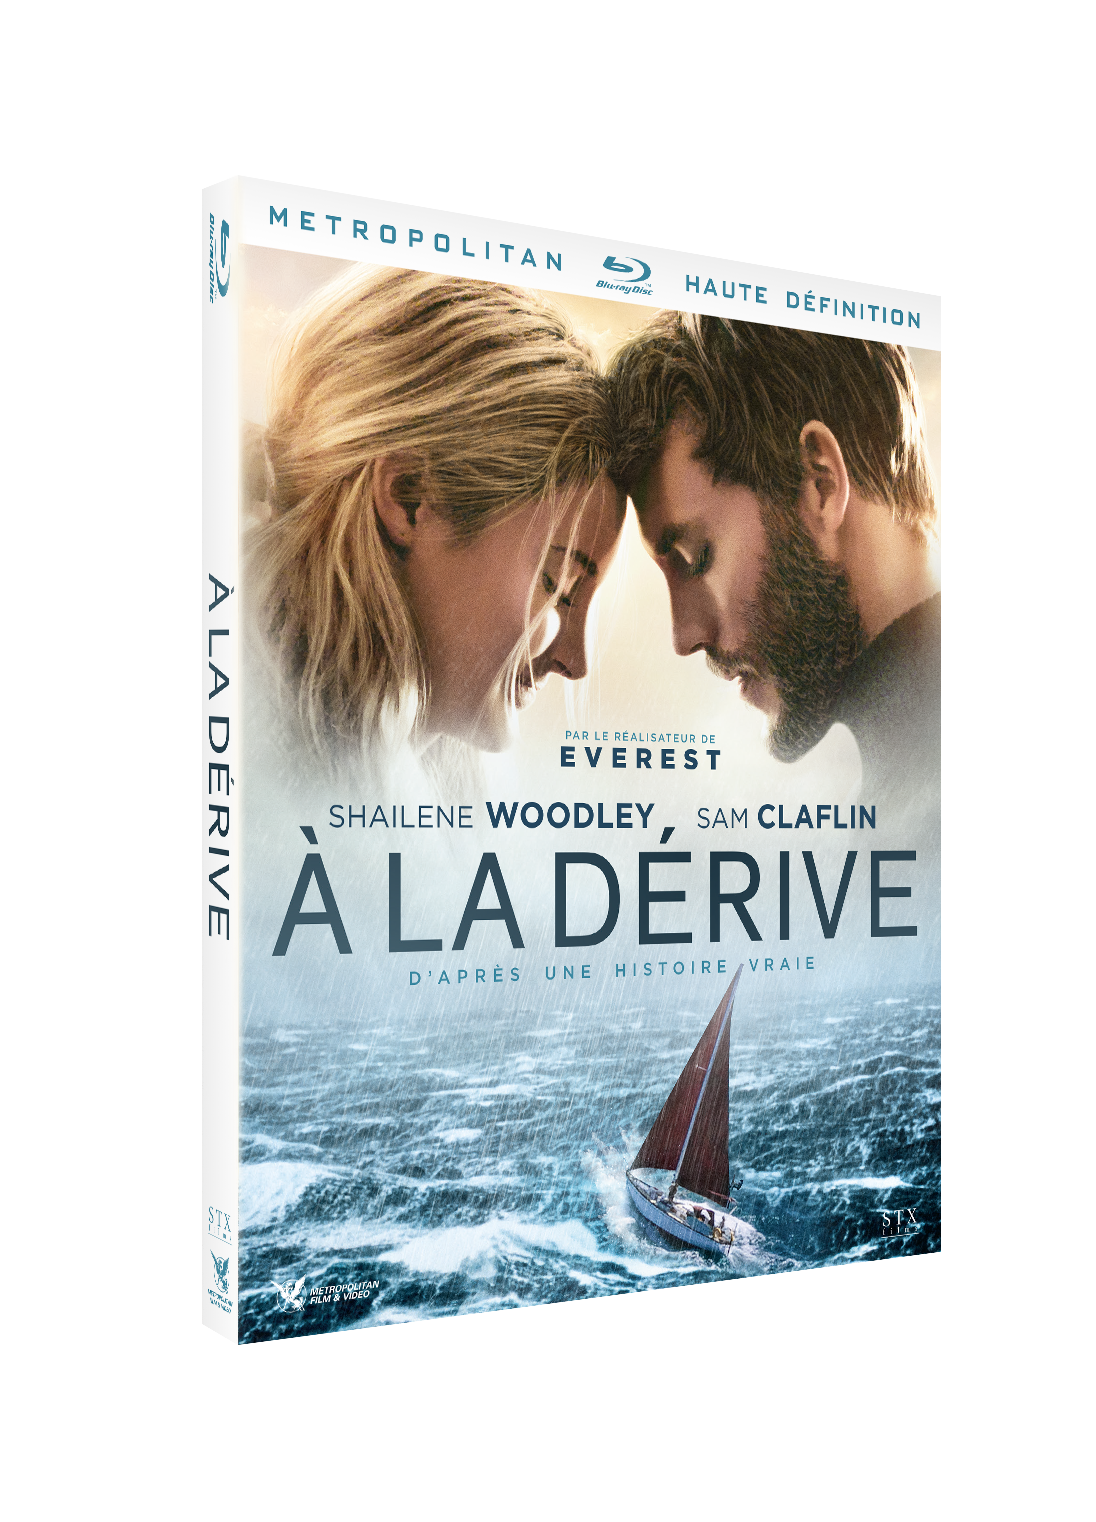 [REVUE CINEMA BLU-RAY] A LA DERIVE